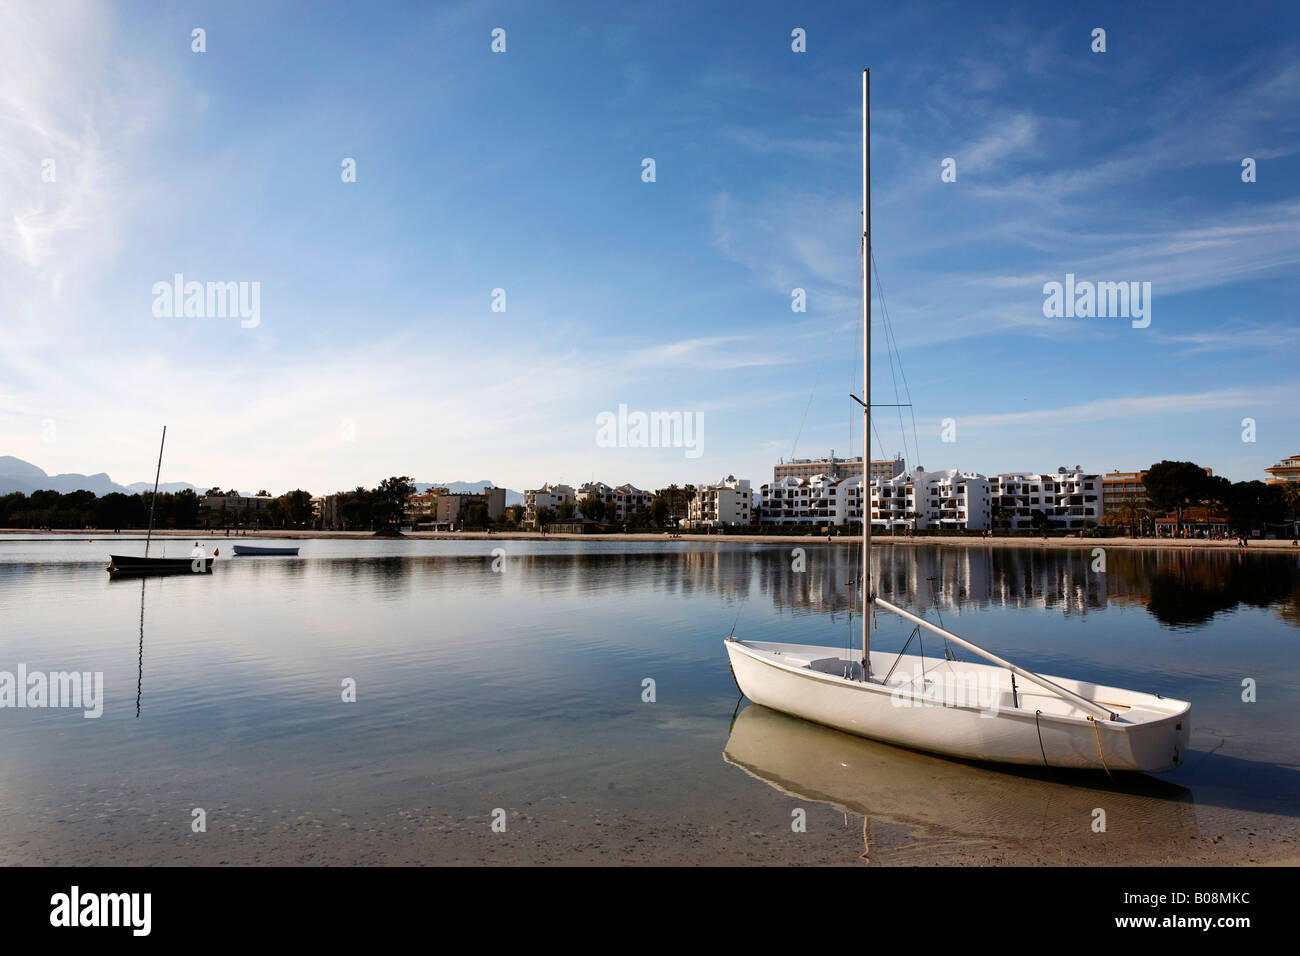 Boat anchored at Port Alcudia, Majorca, Balearic Islands, Spain - Stock Image